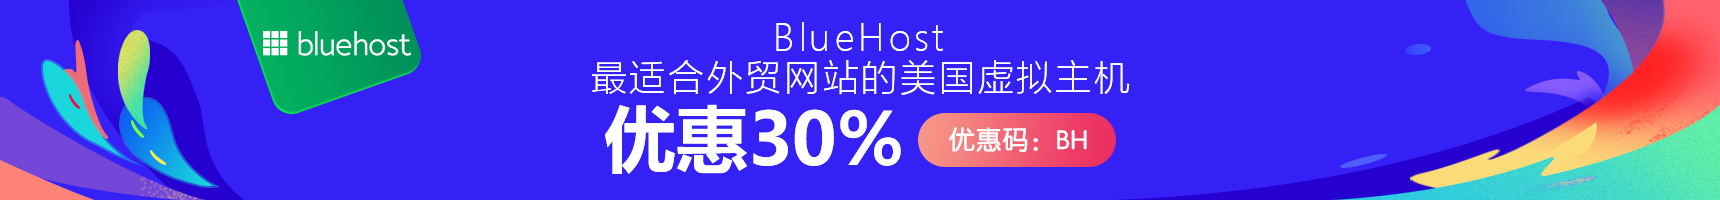 bluehost主机优惠